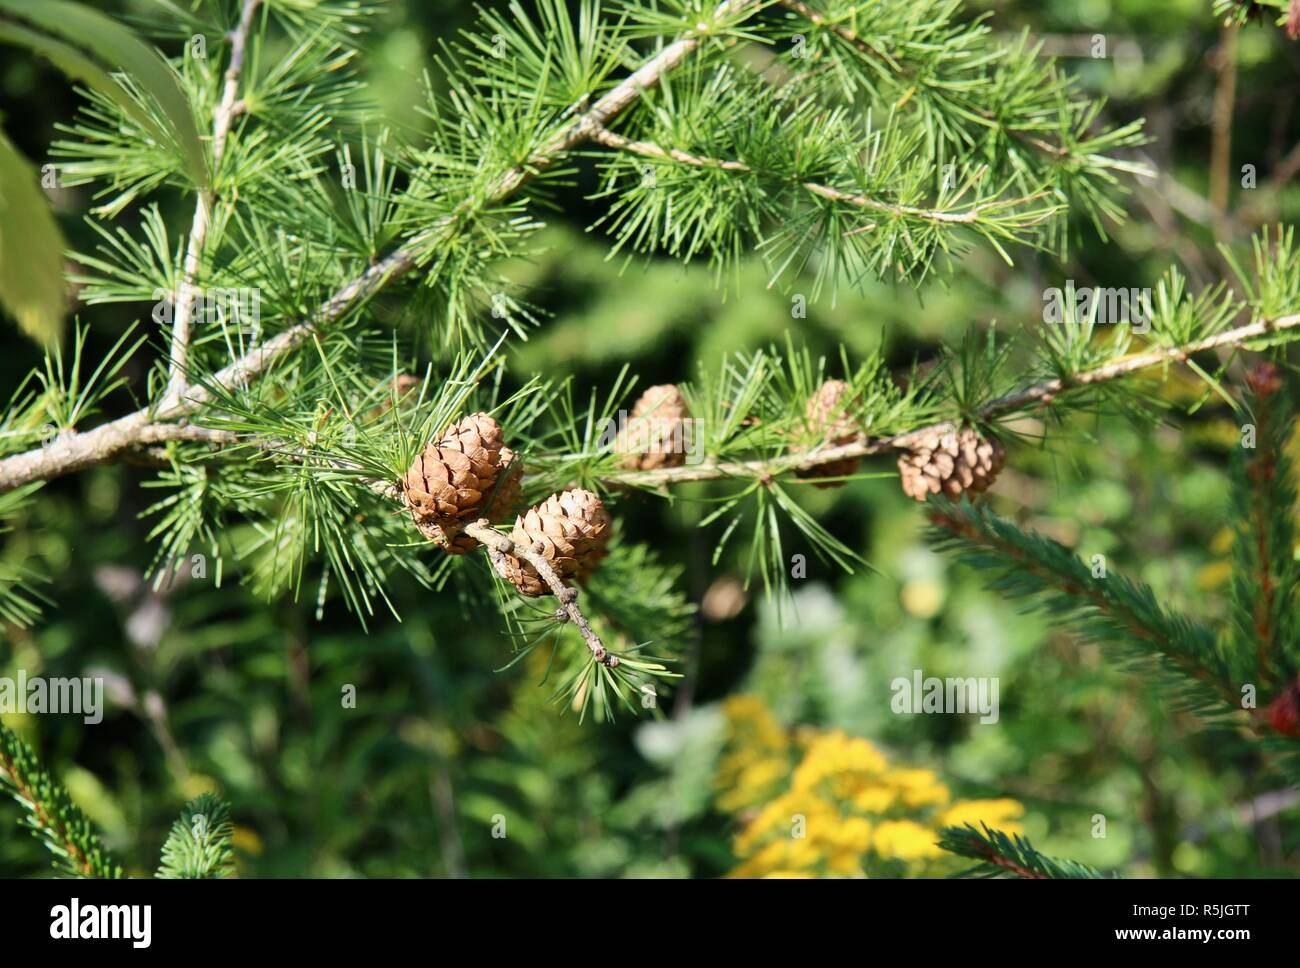 Small pinecones on a branch in the sunshine - Stock Image